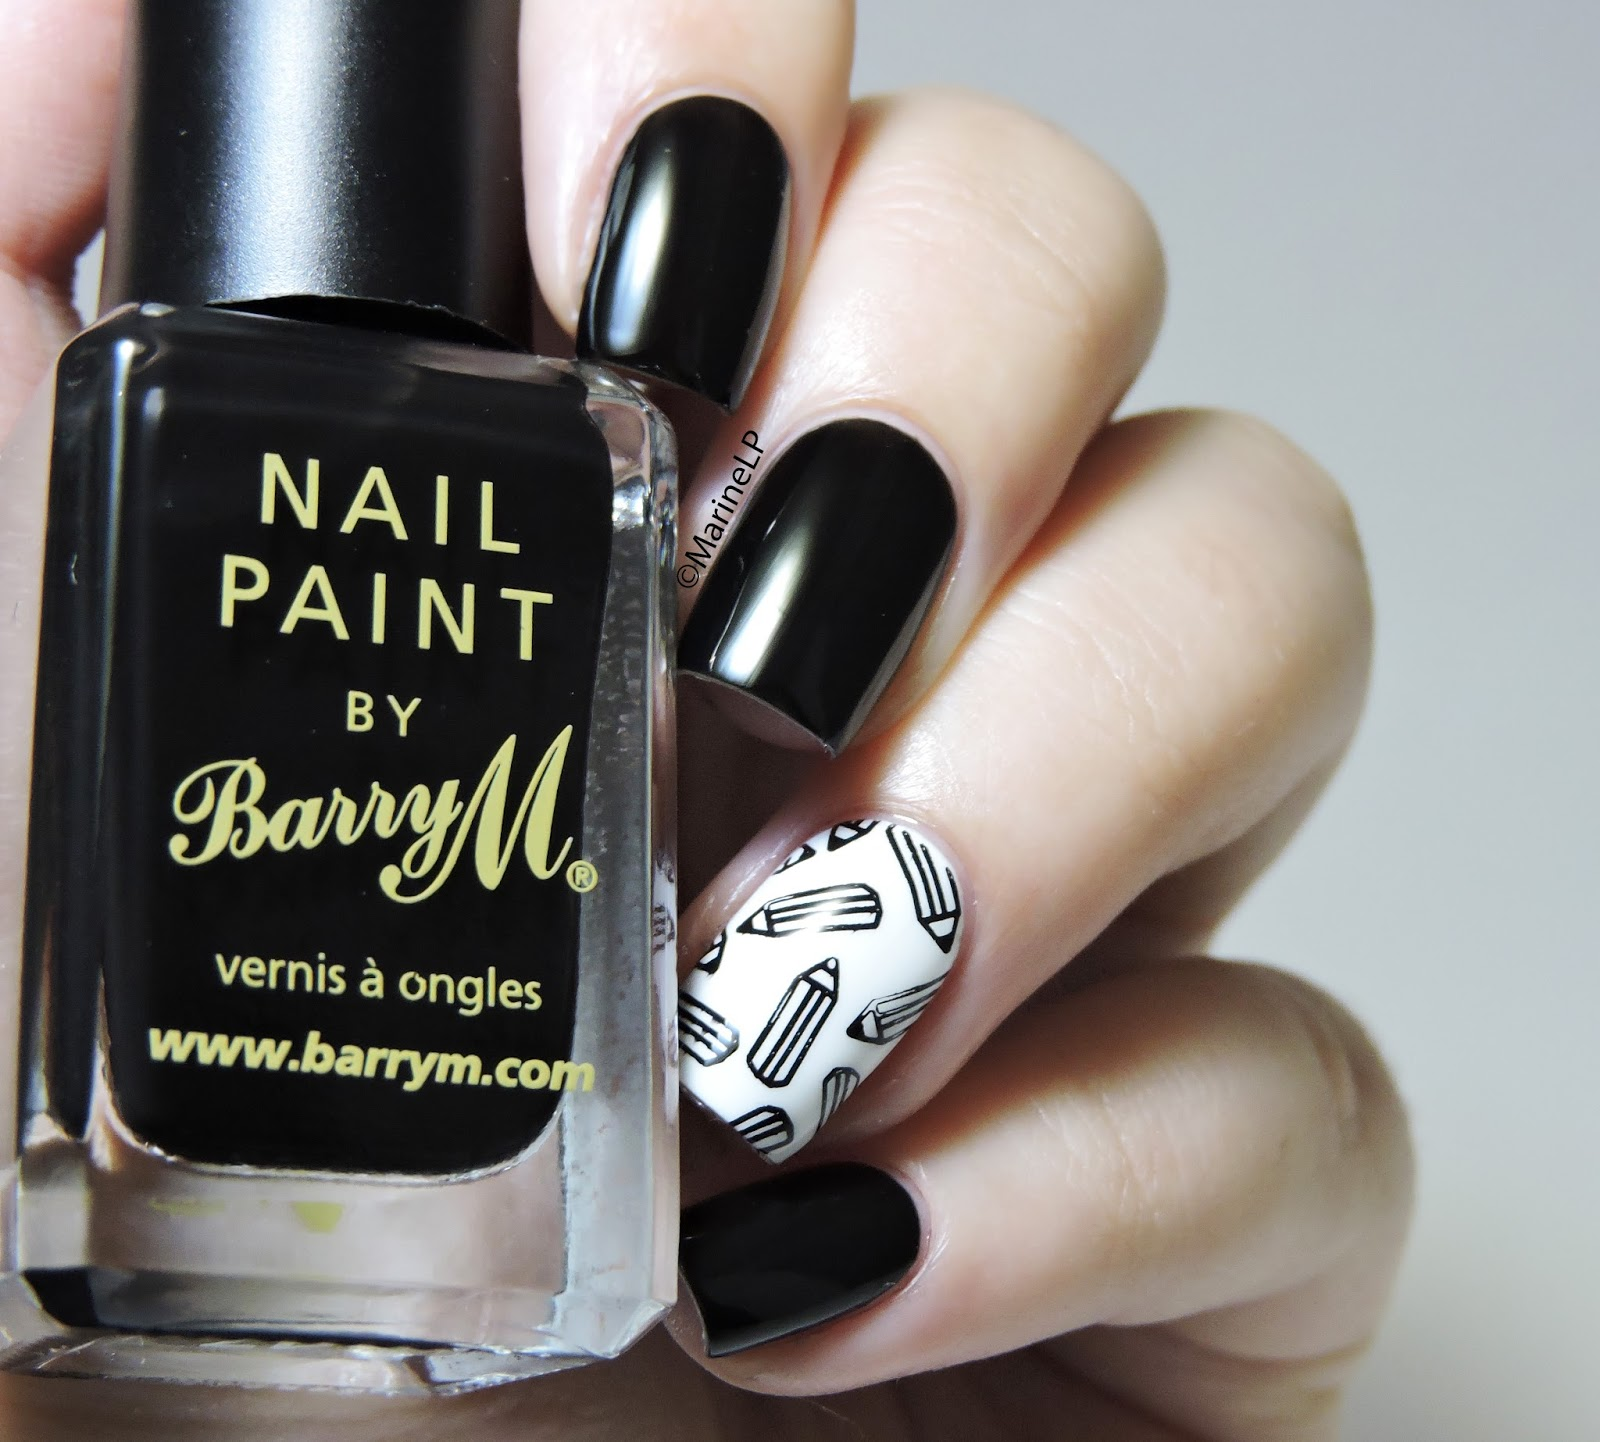 Nailstorming - Mise à jour - Marine Loves Polish and More